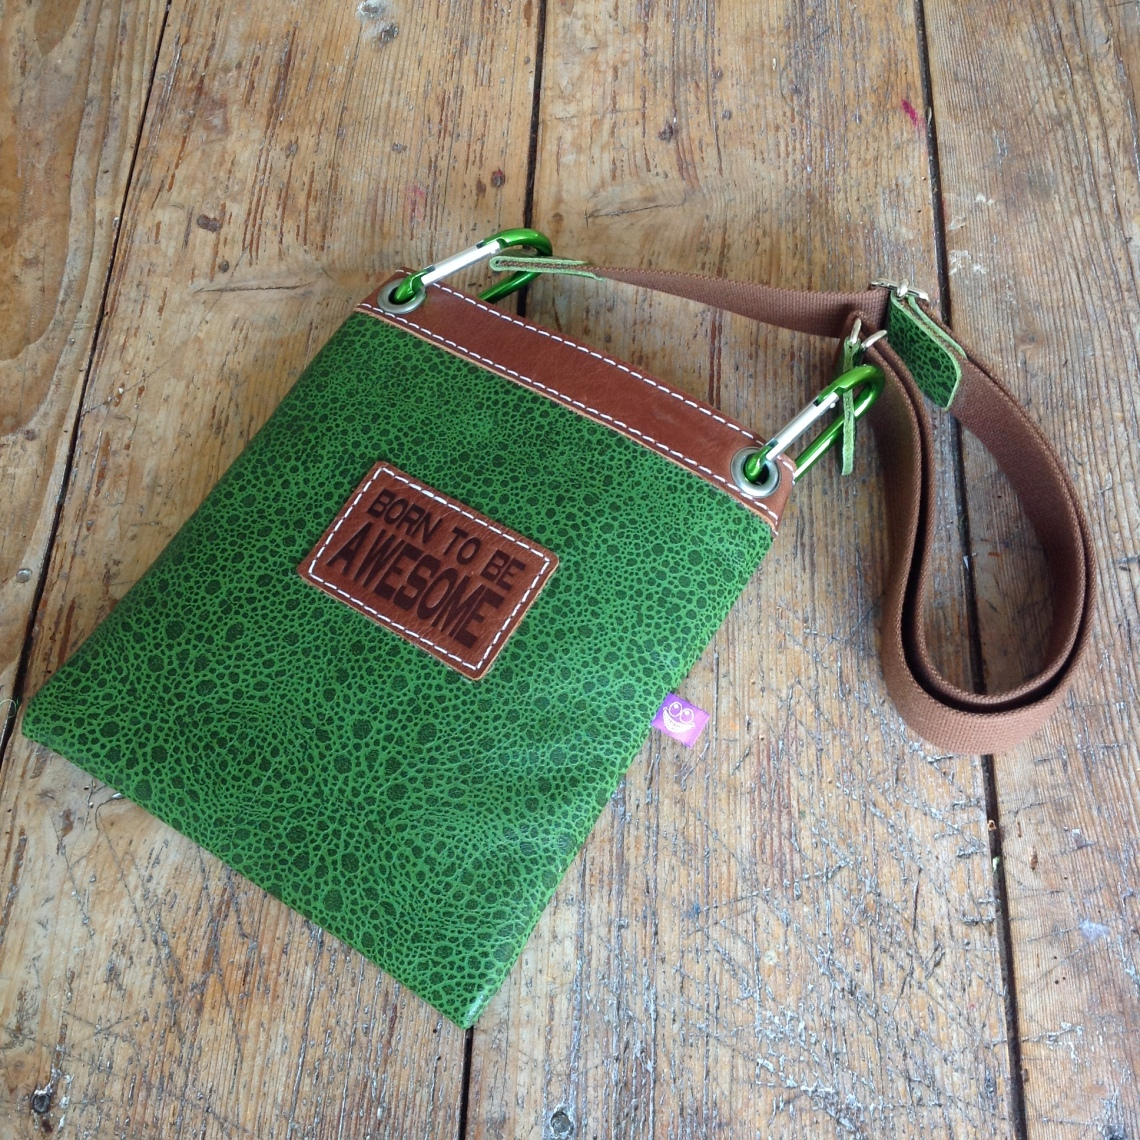 Green leather bag